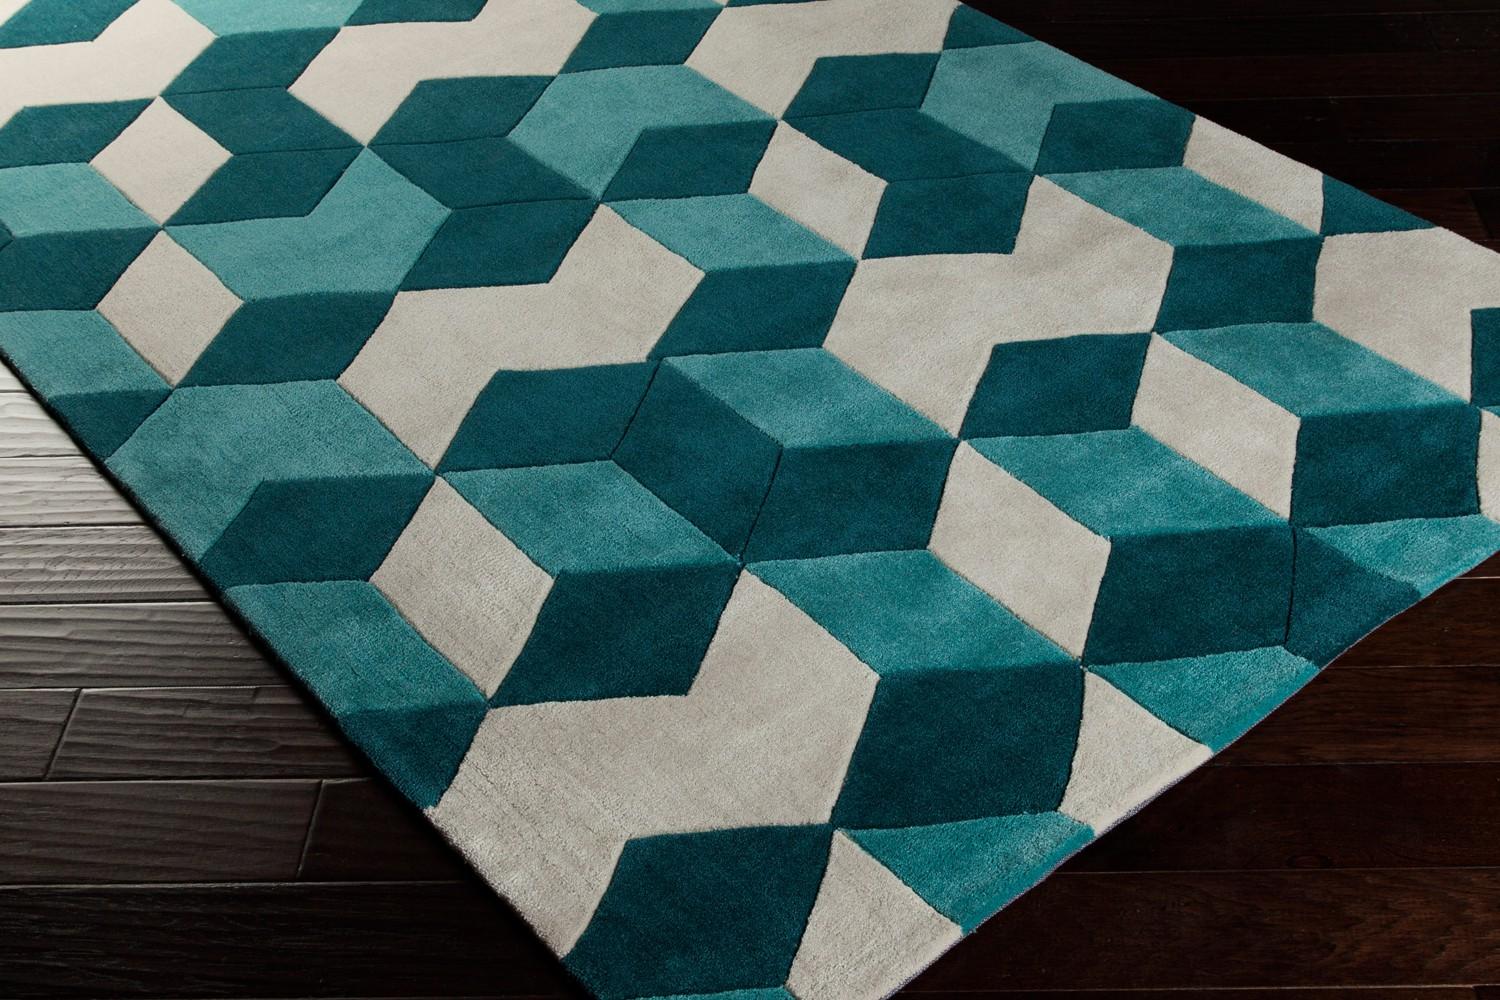 Cosmopolitan COS 9189 Teal Rectangle Surya Rugs In Green For Floor Decor Ideas